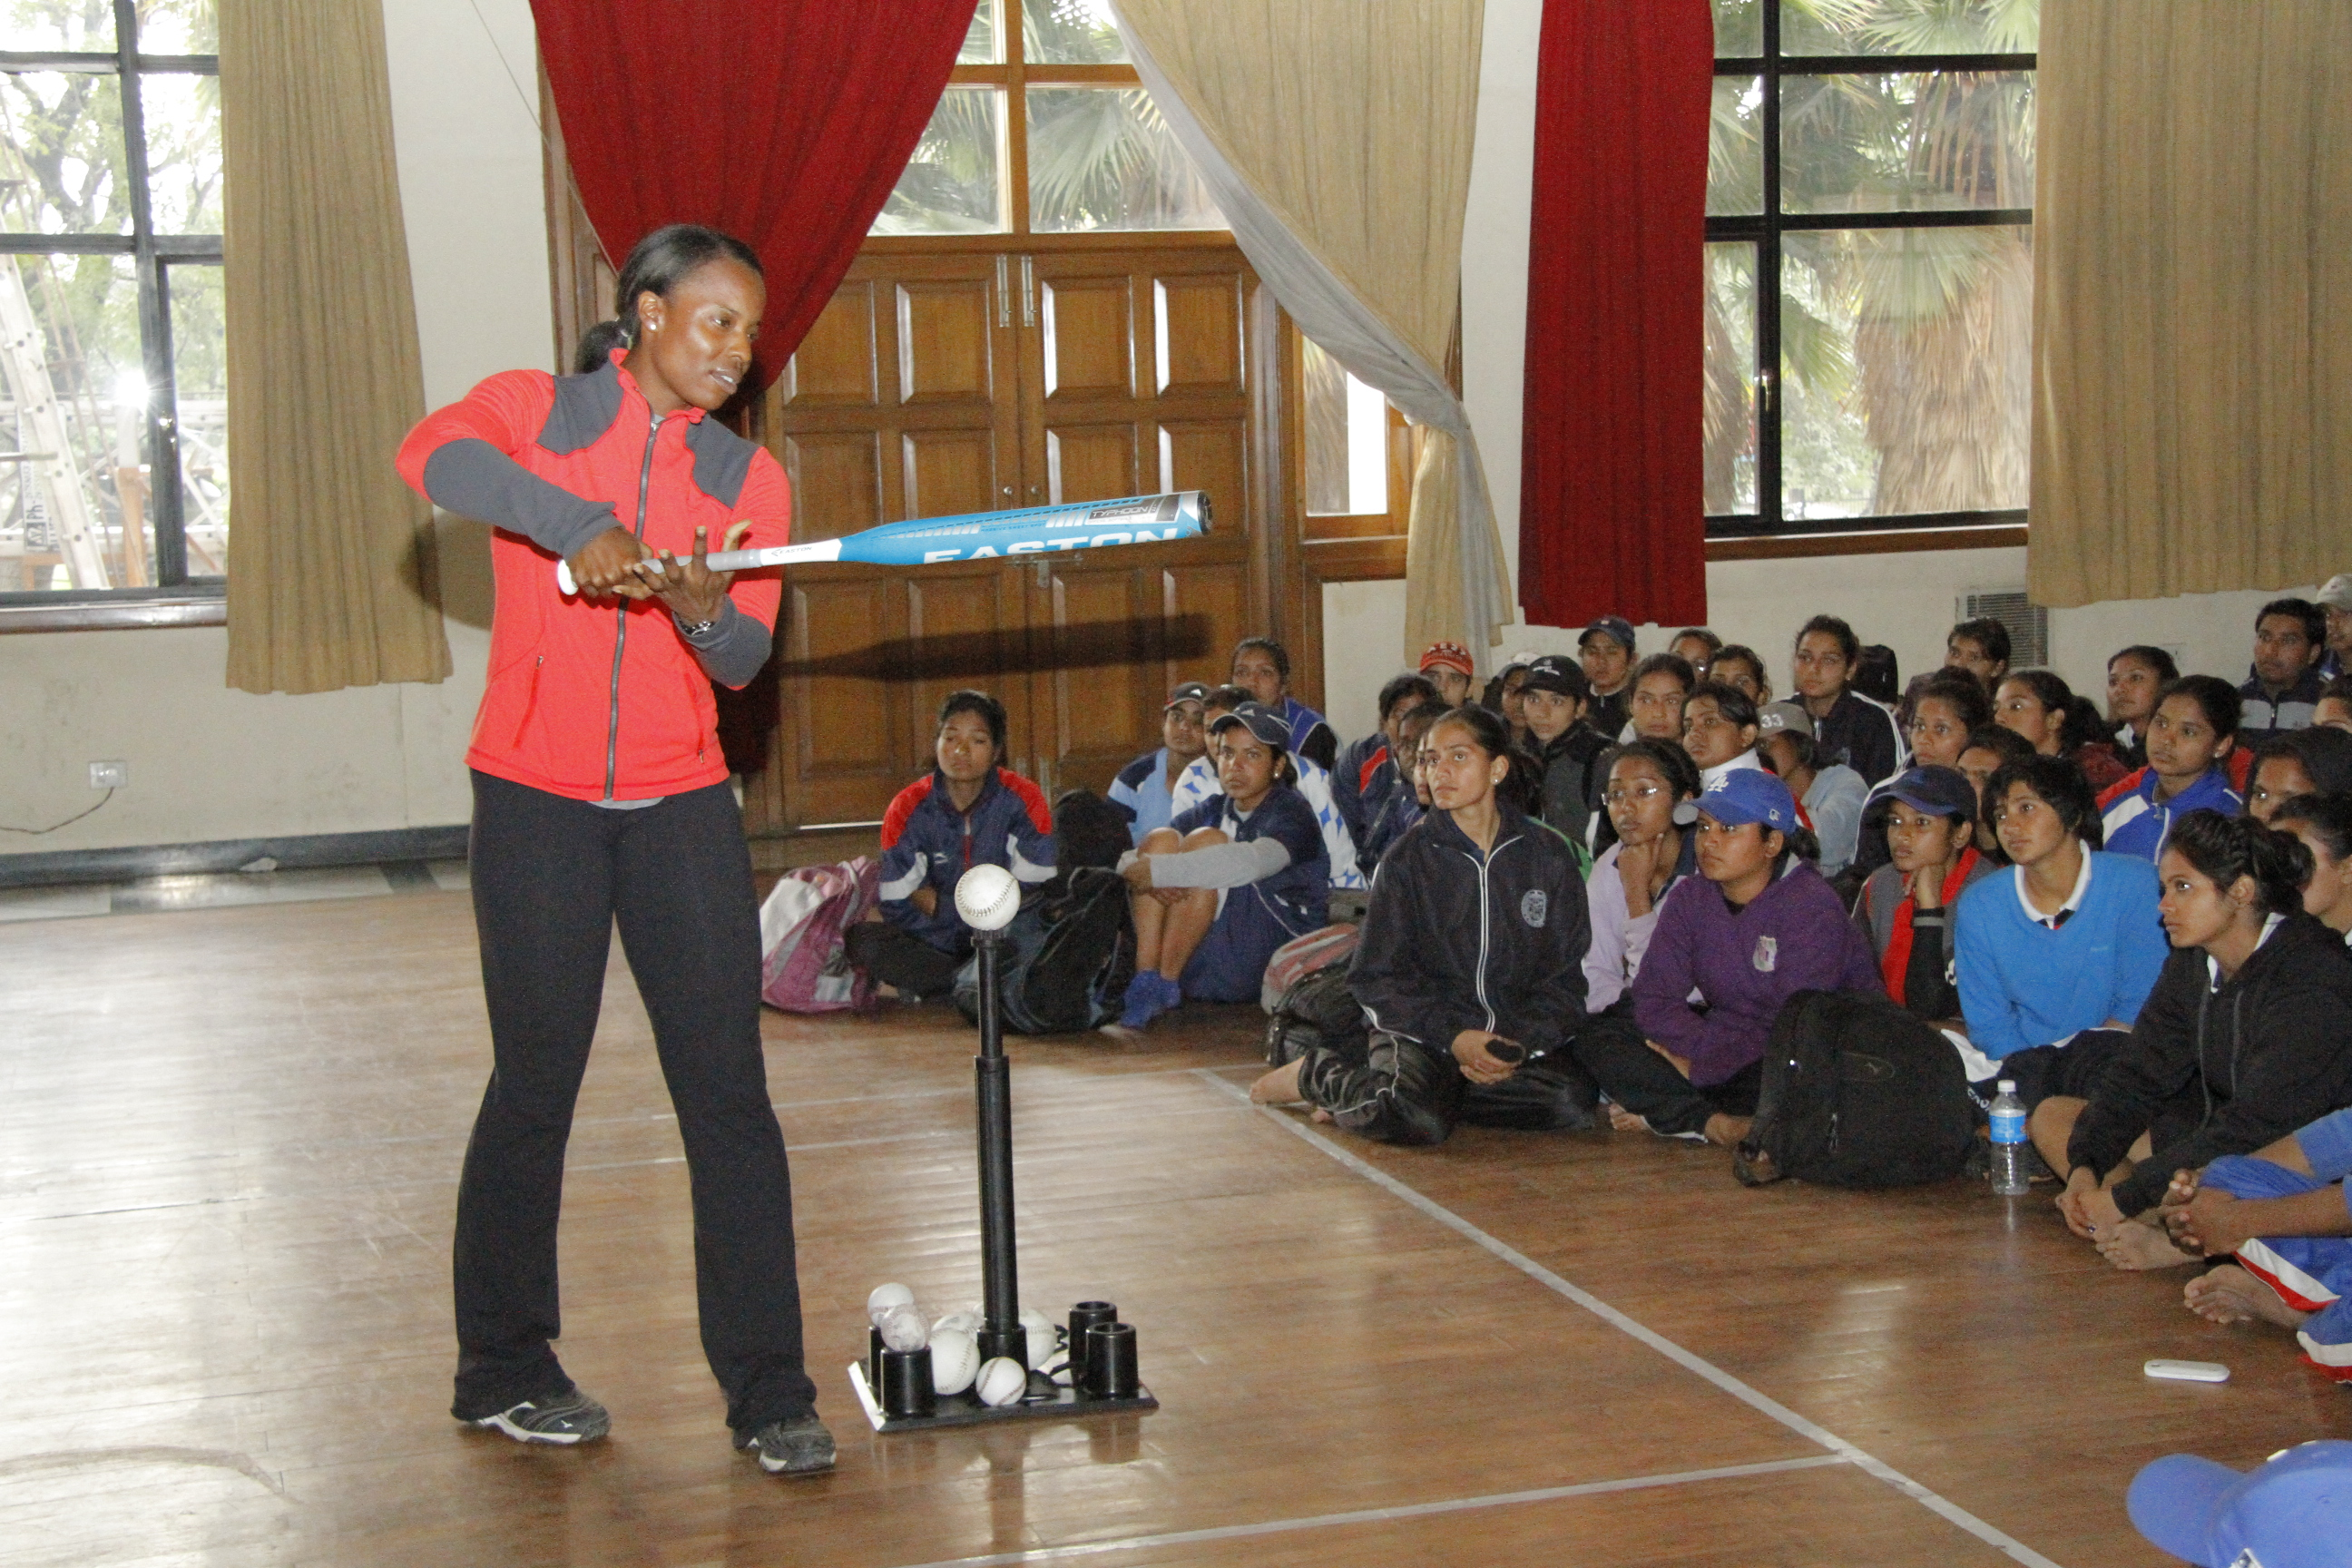 Sports Envoy Natasha Watley provides key tips on batting at a group meeting.